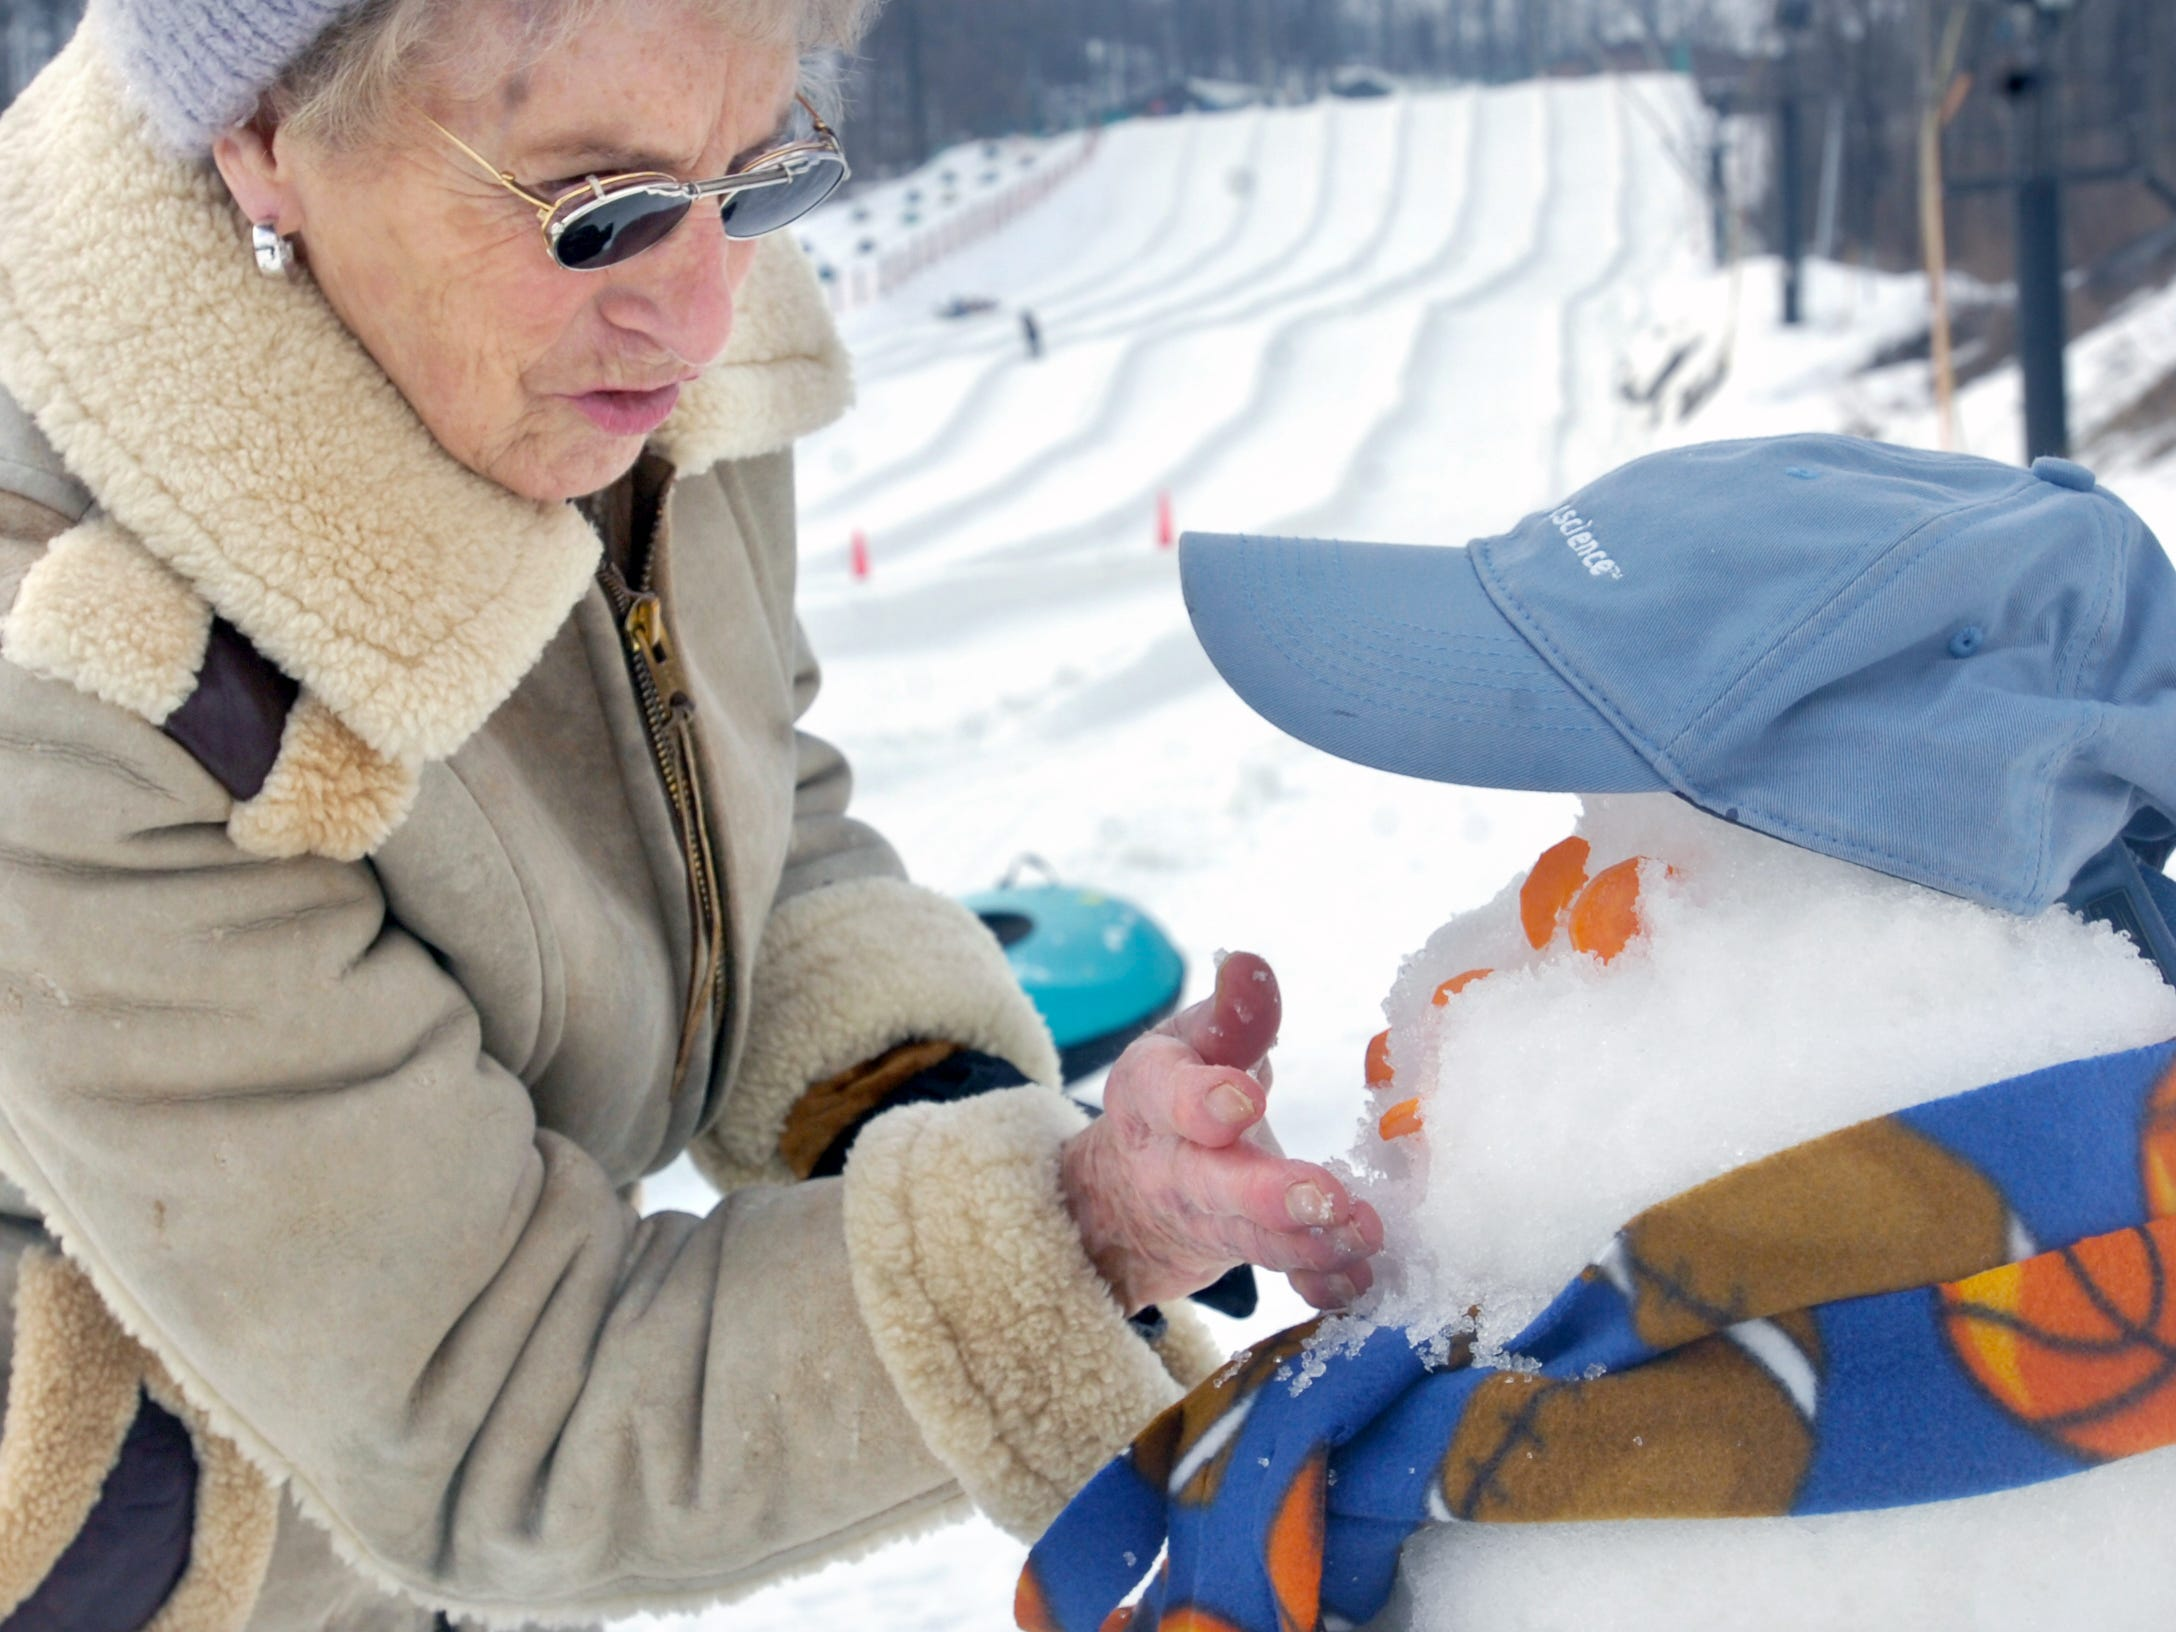 Janet Rankin of Woodcrest Villa in Lancaster builds a snowman for a competition during the event for seniors Monday at Ski Roundtop February 26, 2007. About 150 independent living residents from nine areas participated.